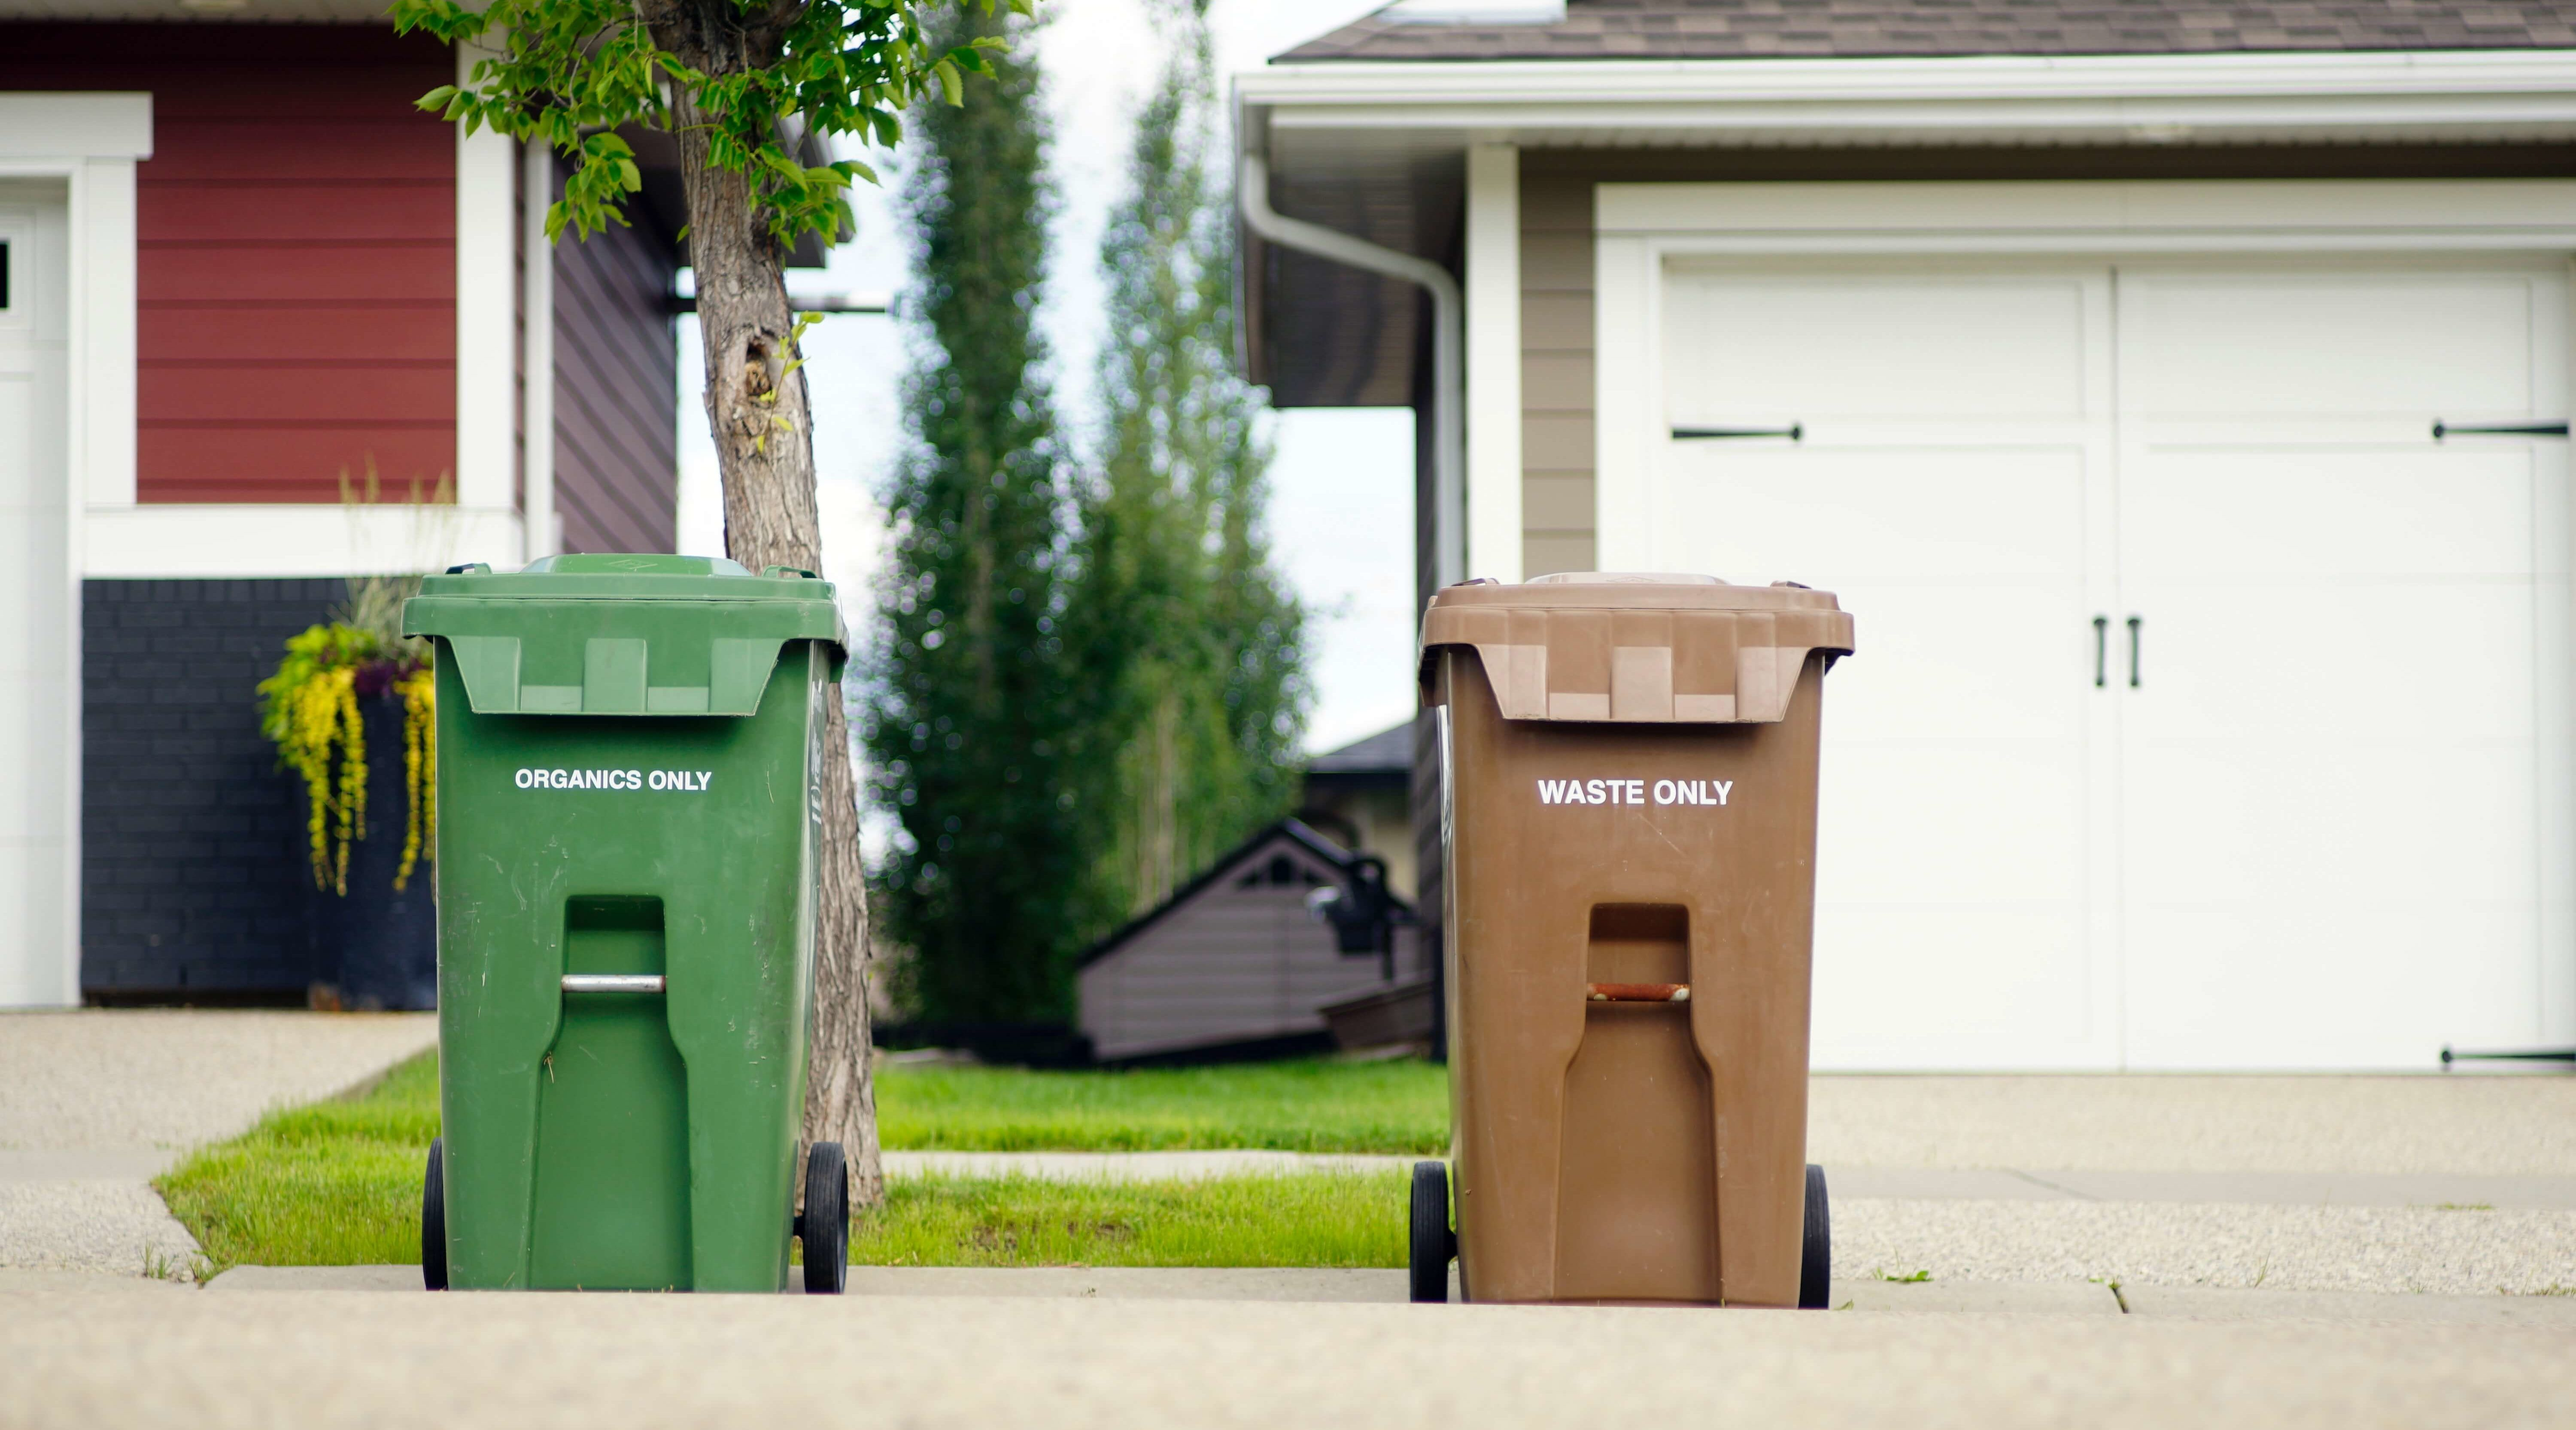 Responsible Waste Management - Recycling Do's and Don'ts